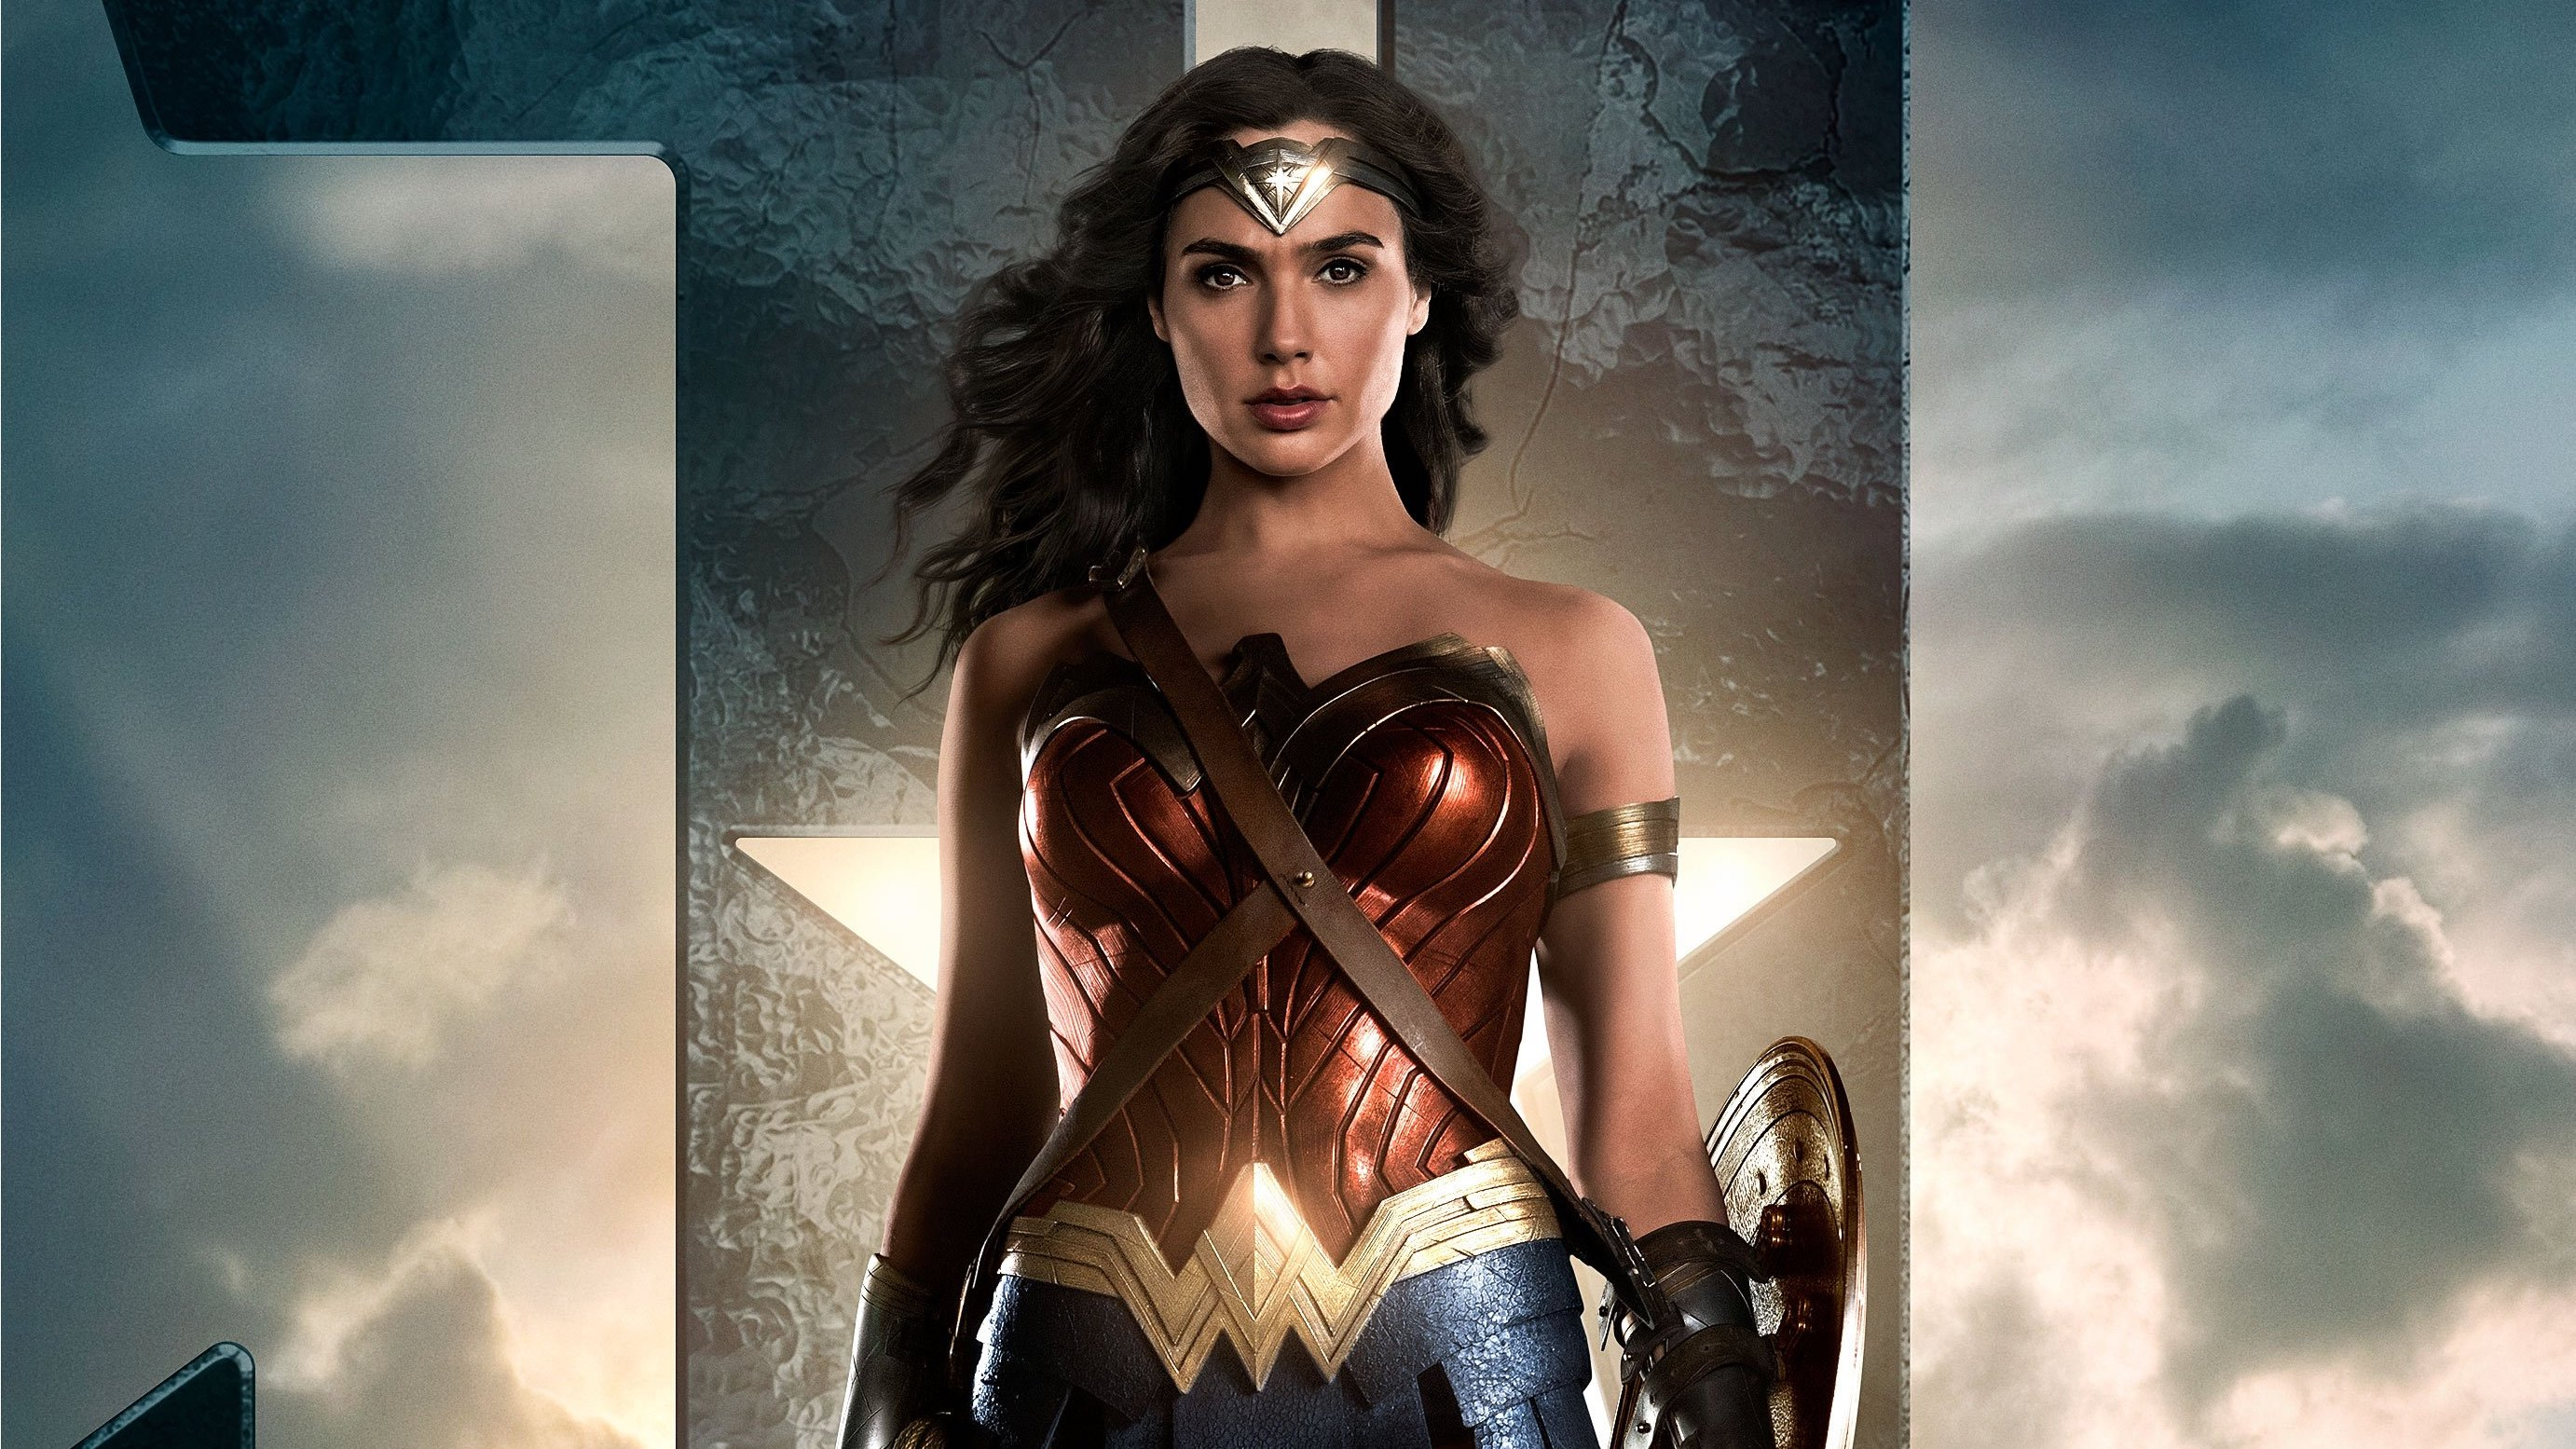 Wonder Woman gets her own 'Justice League' teaser video and poster | Batman  News